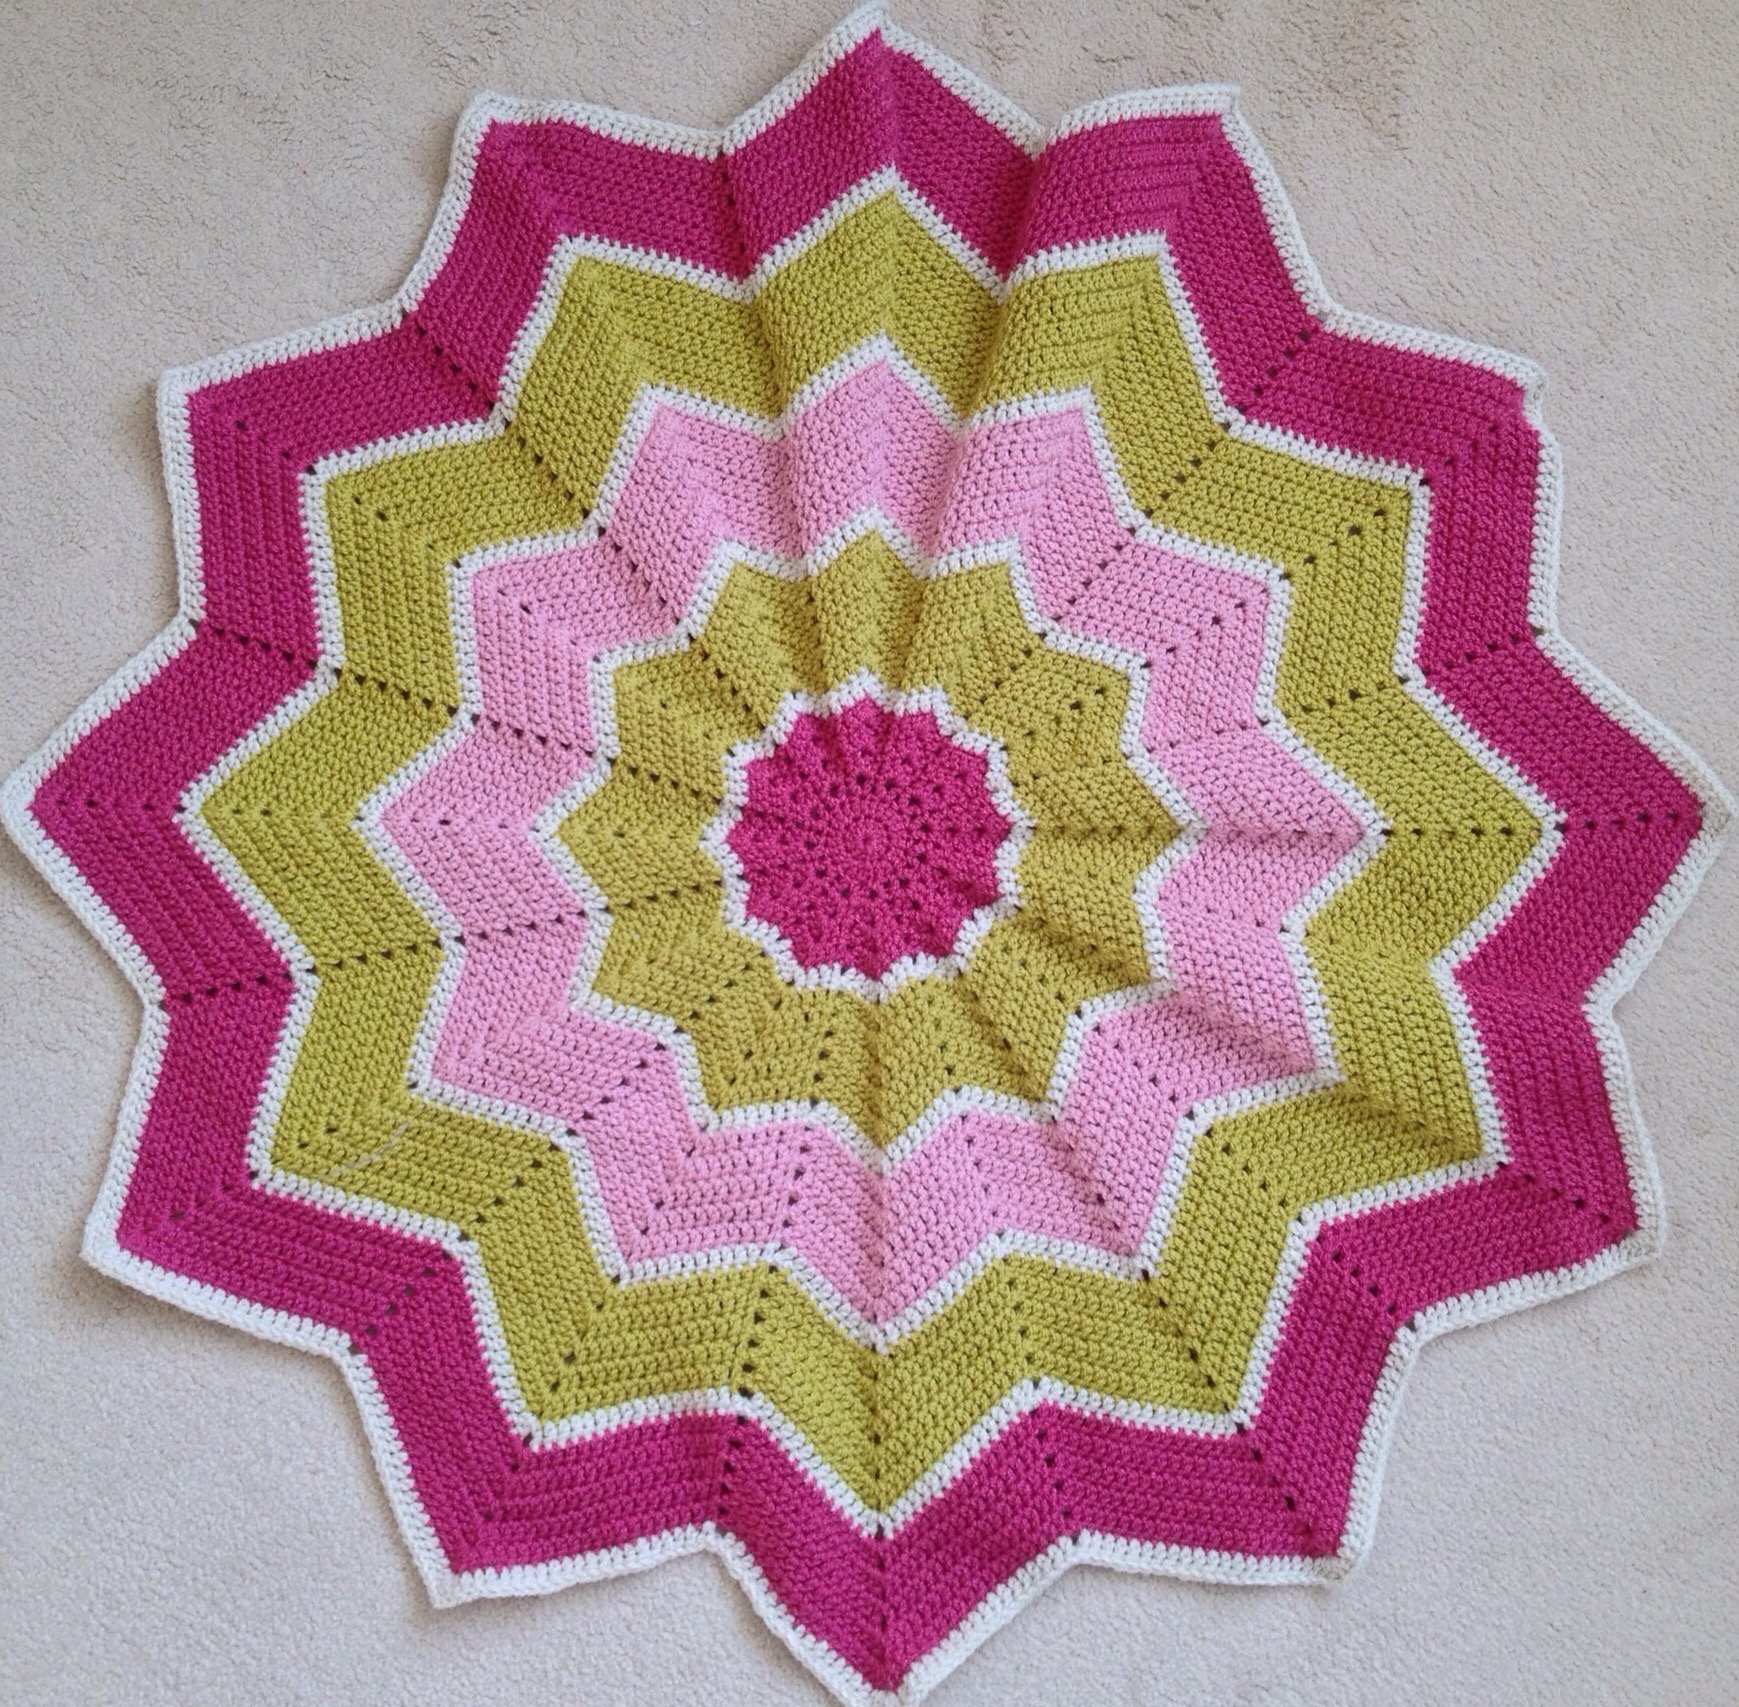 12 Pointed Star Ripple Blanket The Little Room Of Rachell